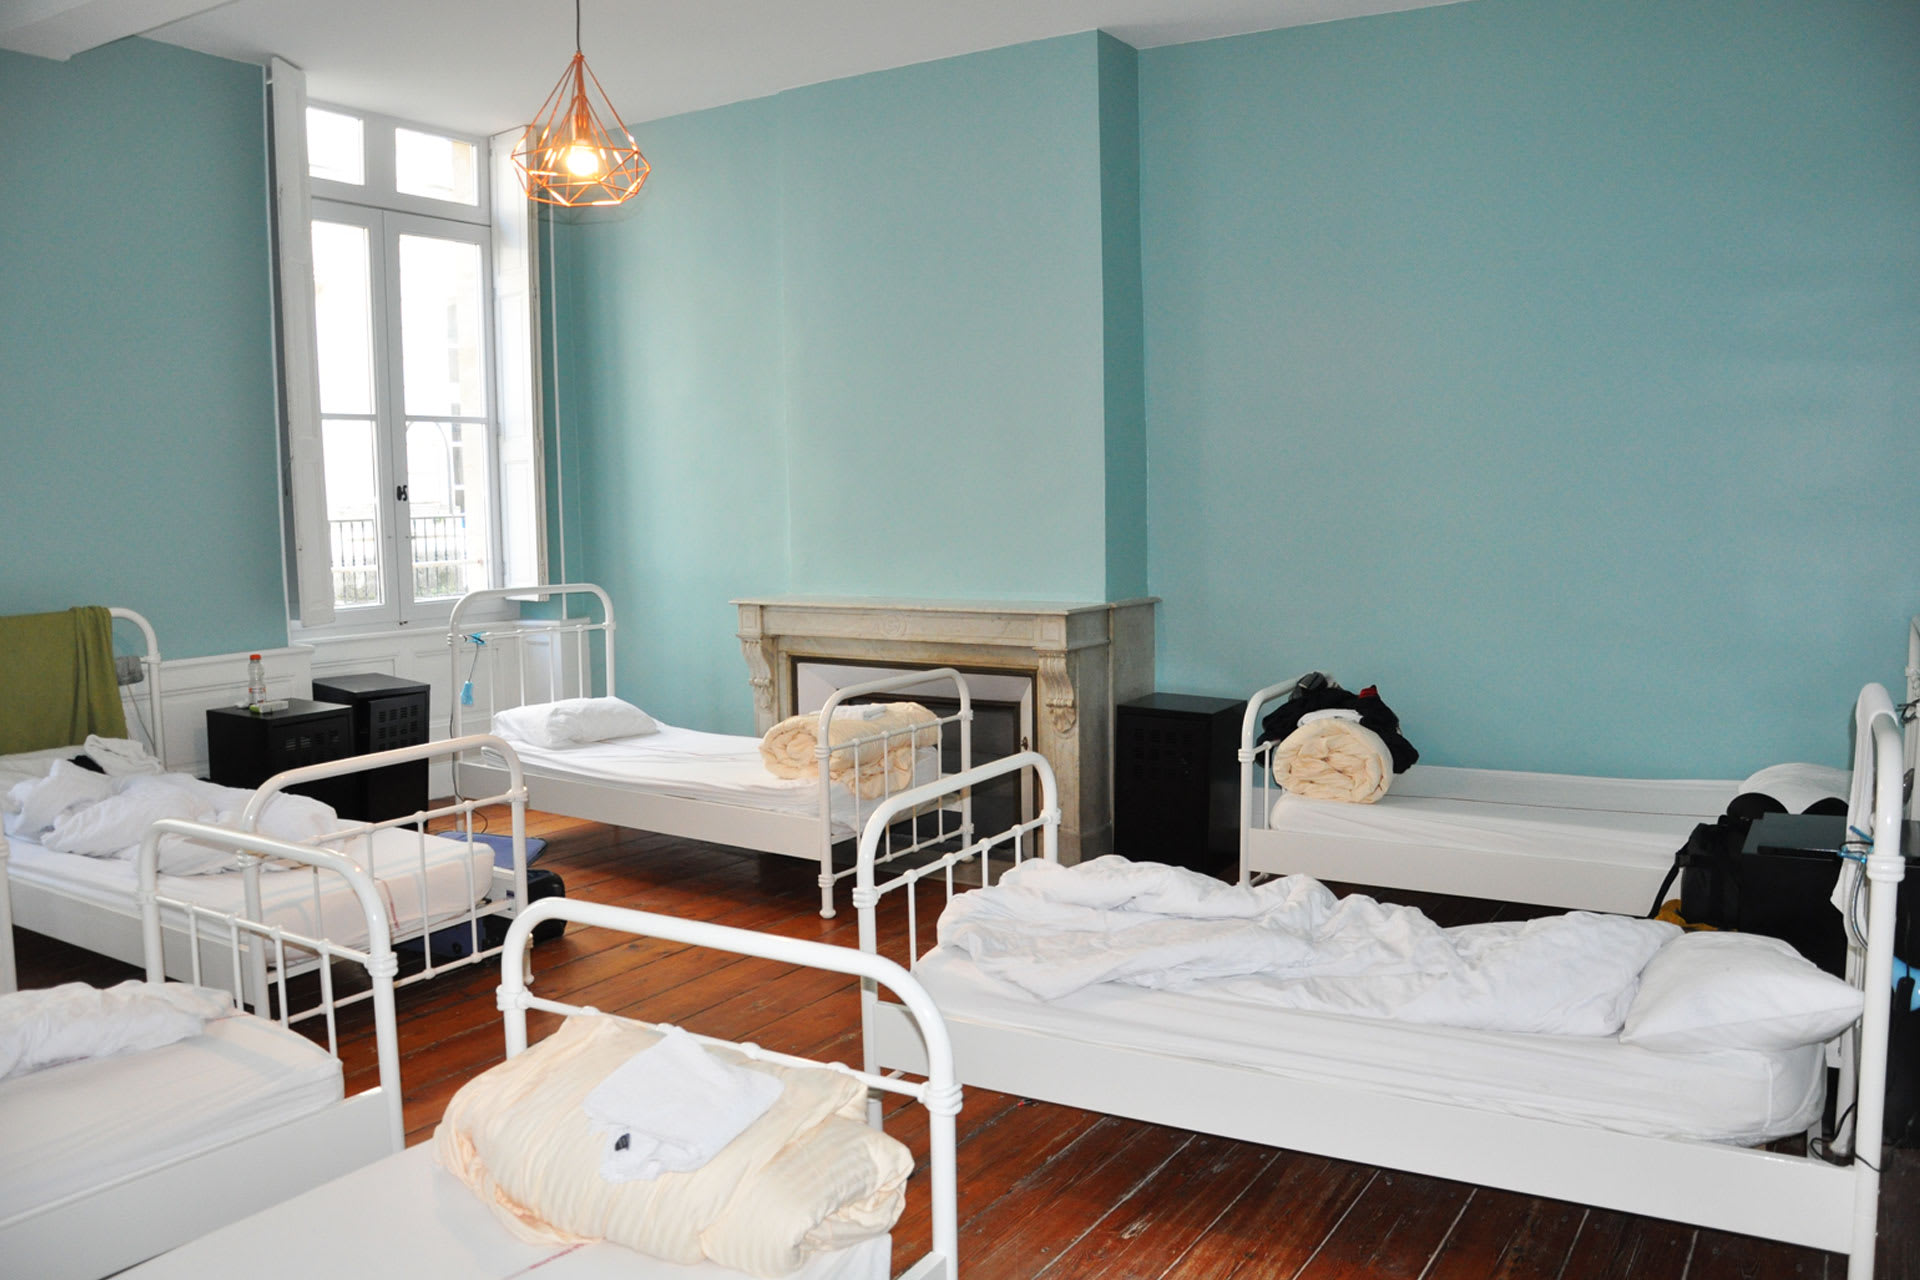 HOSTEL - Hostel 20 Bordeaux